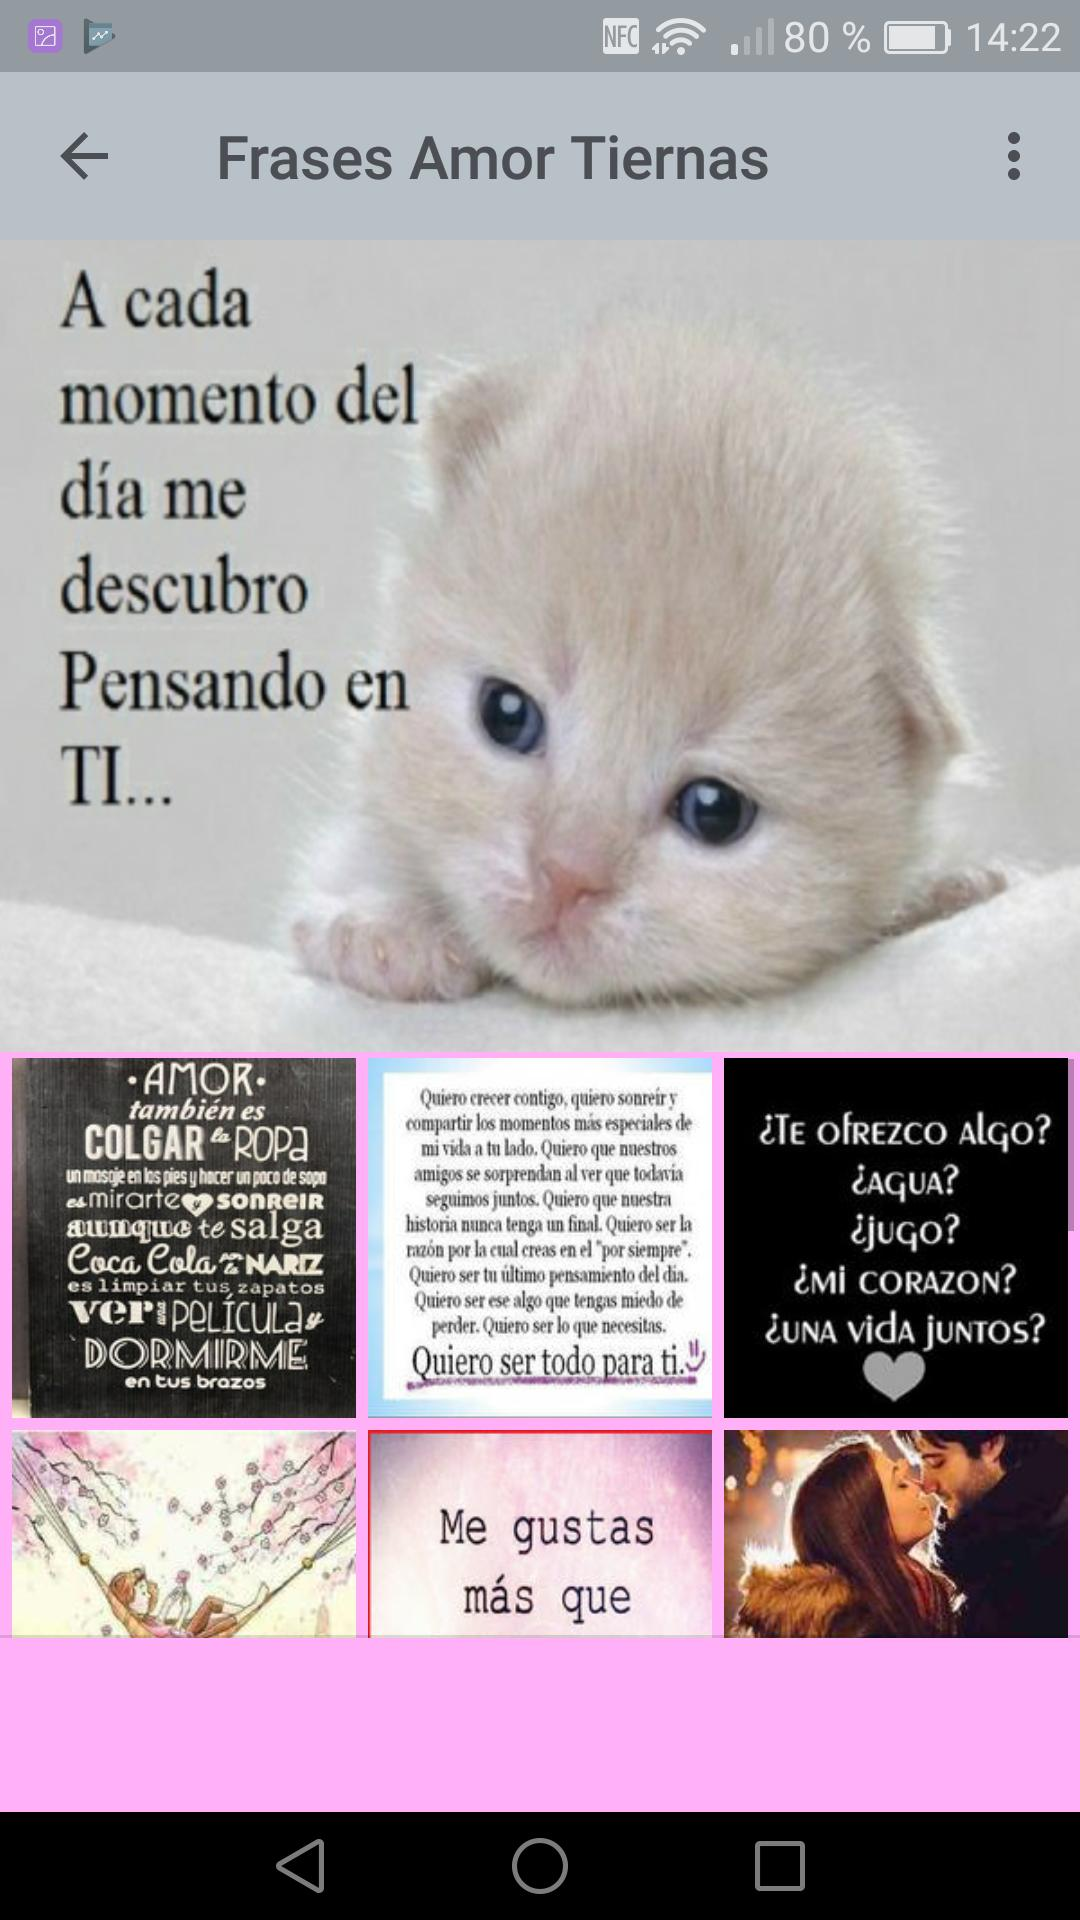 Frases Tiernas De Amor For Android Apk Download